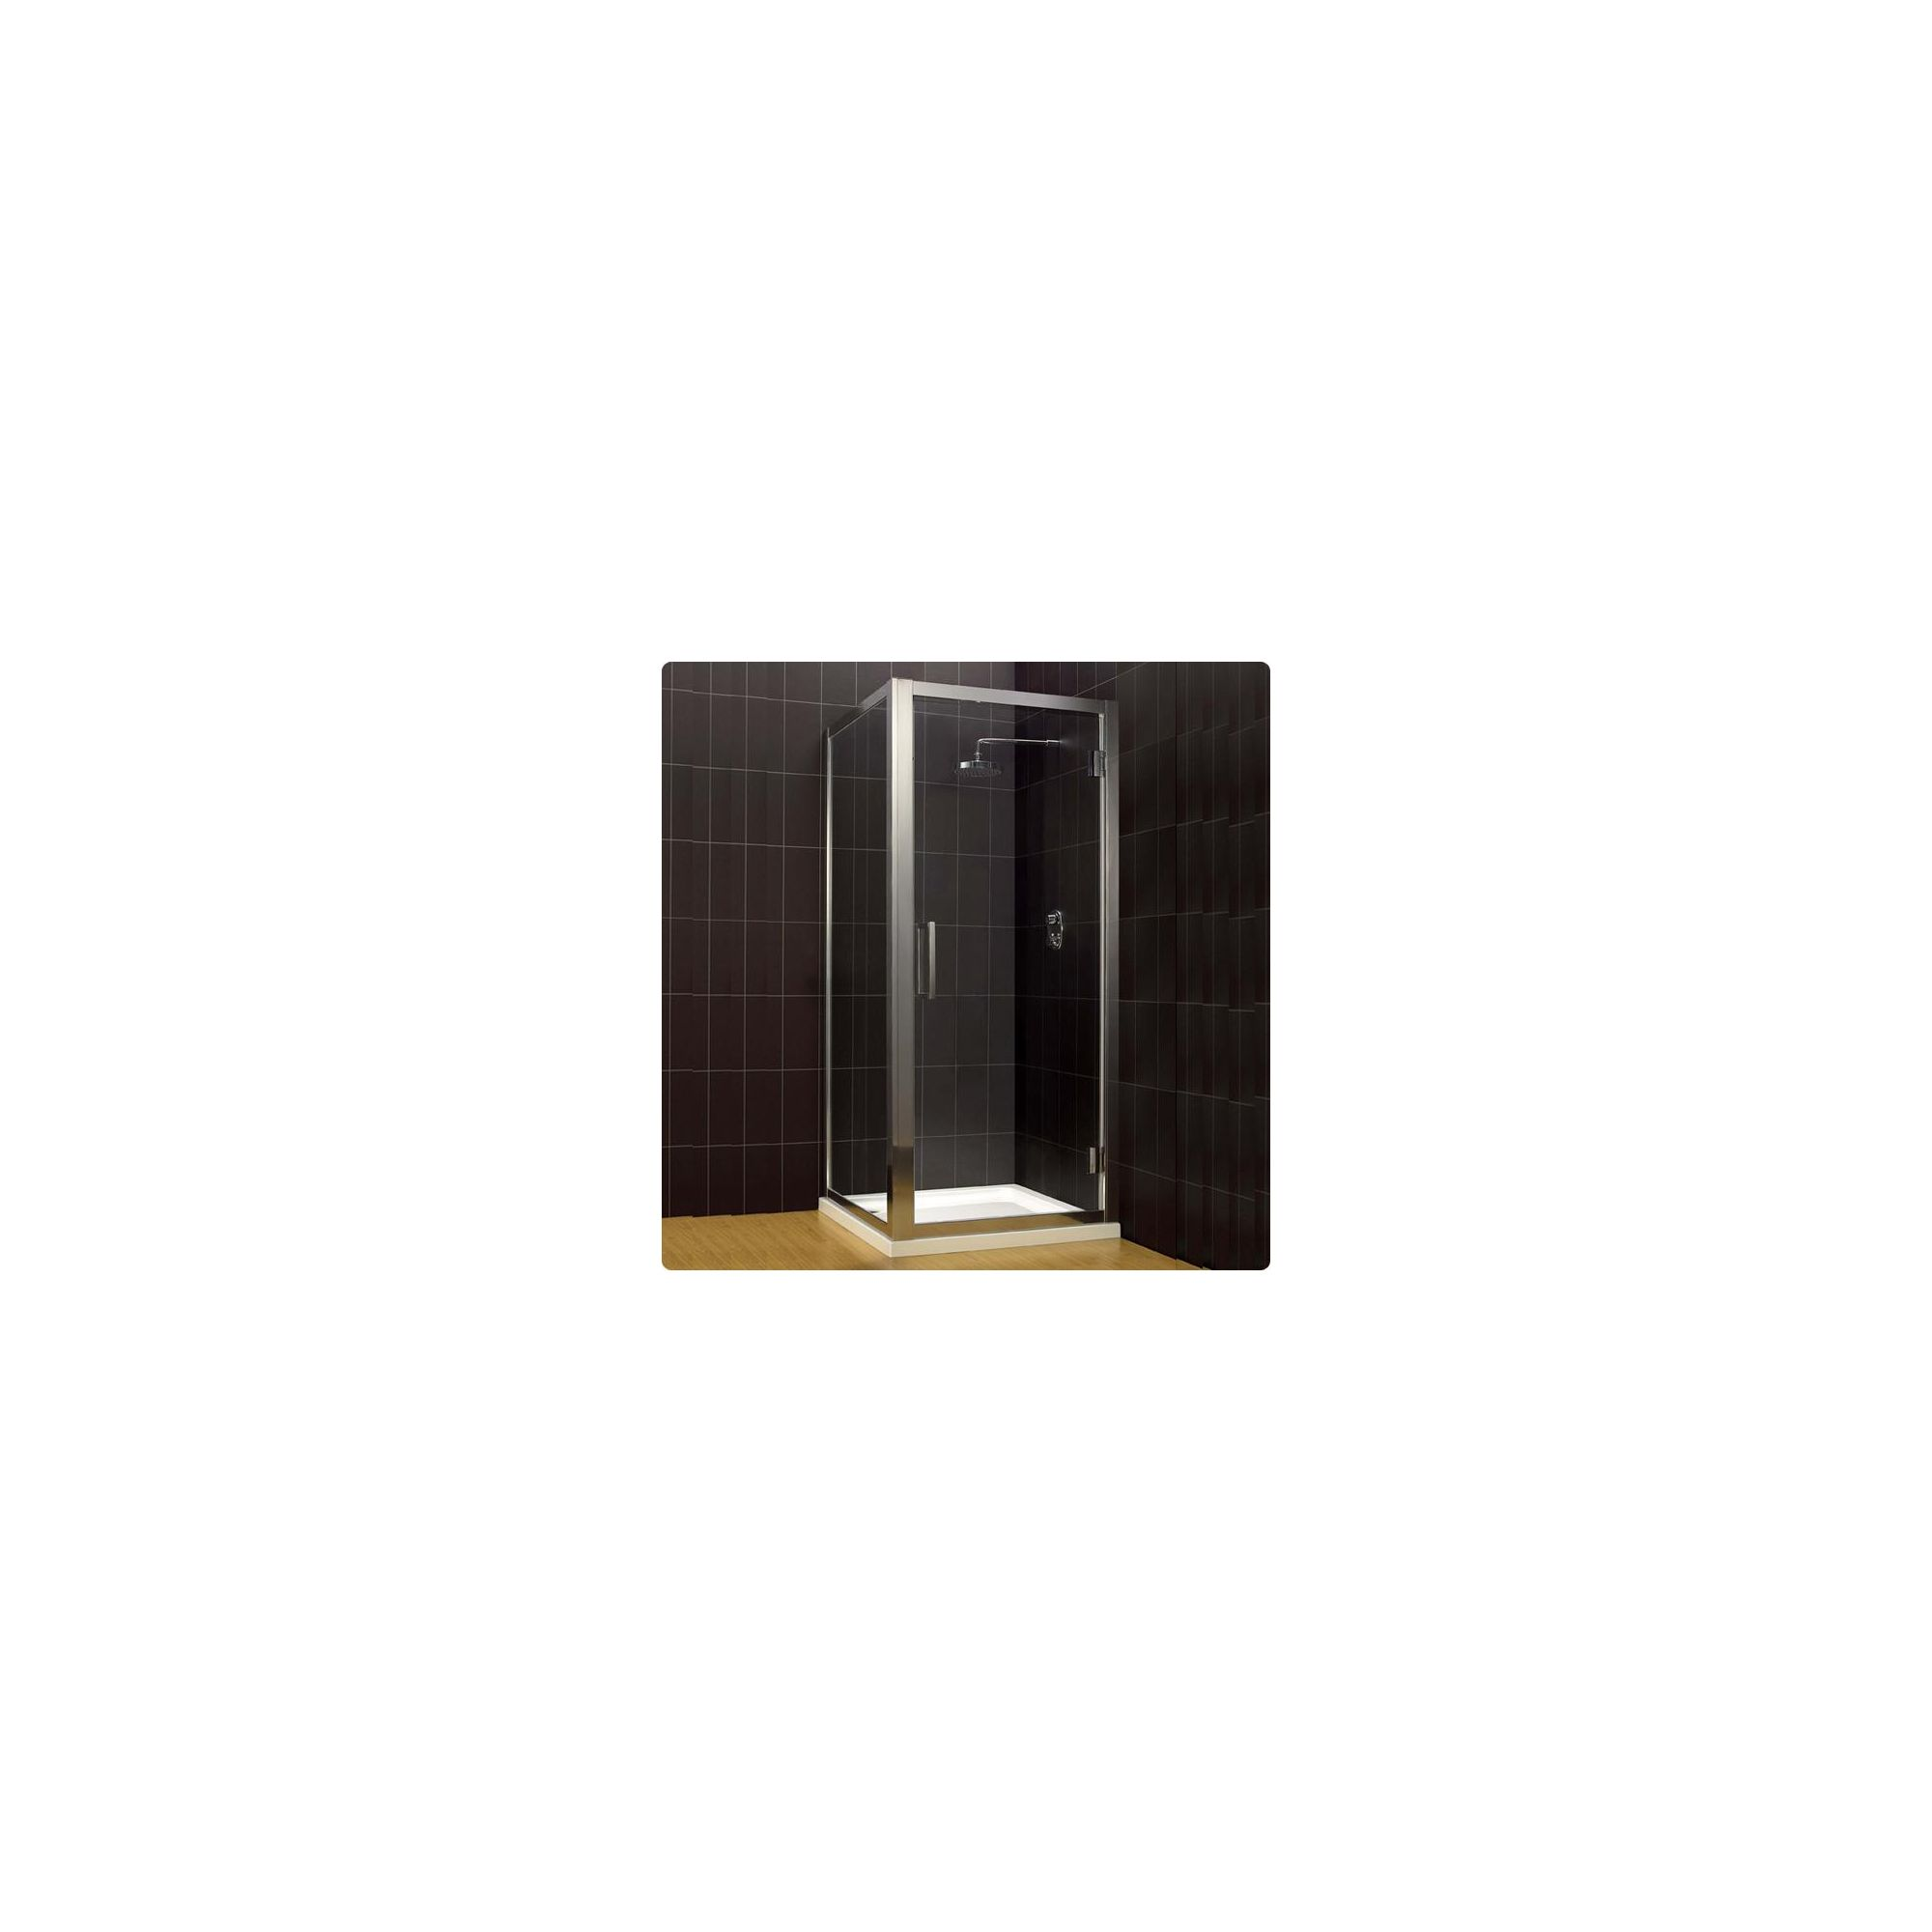 Duchy Supreme Silver Hinged Door Shower Enclosure with Towel Rail, 1000mm x 900mm, Standard Tray, 8mm Glass at Tesco Direct